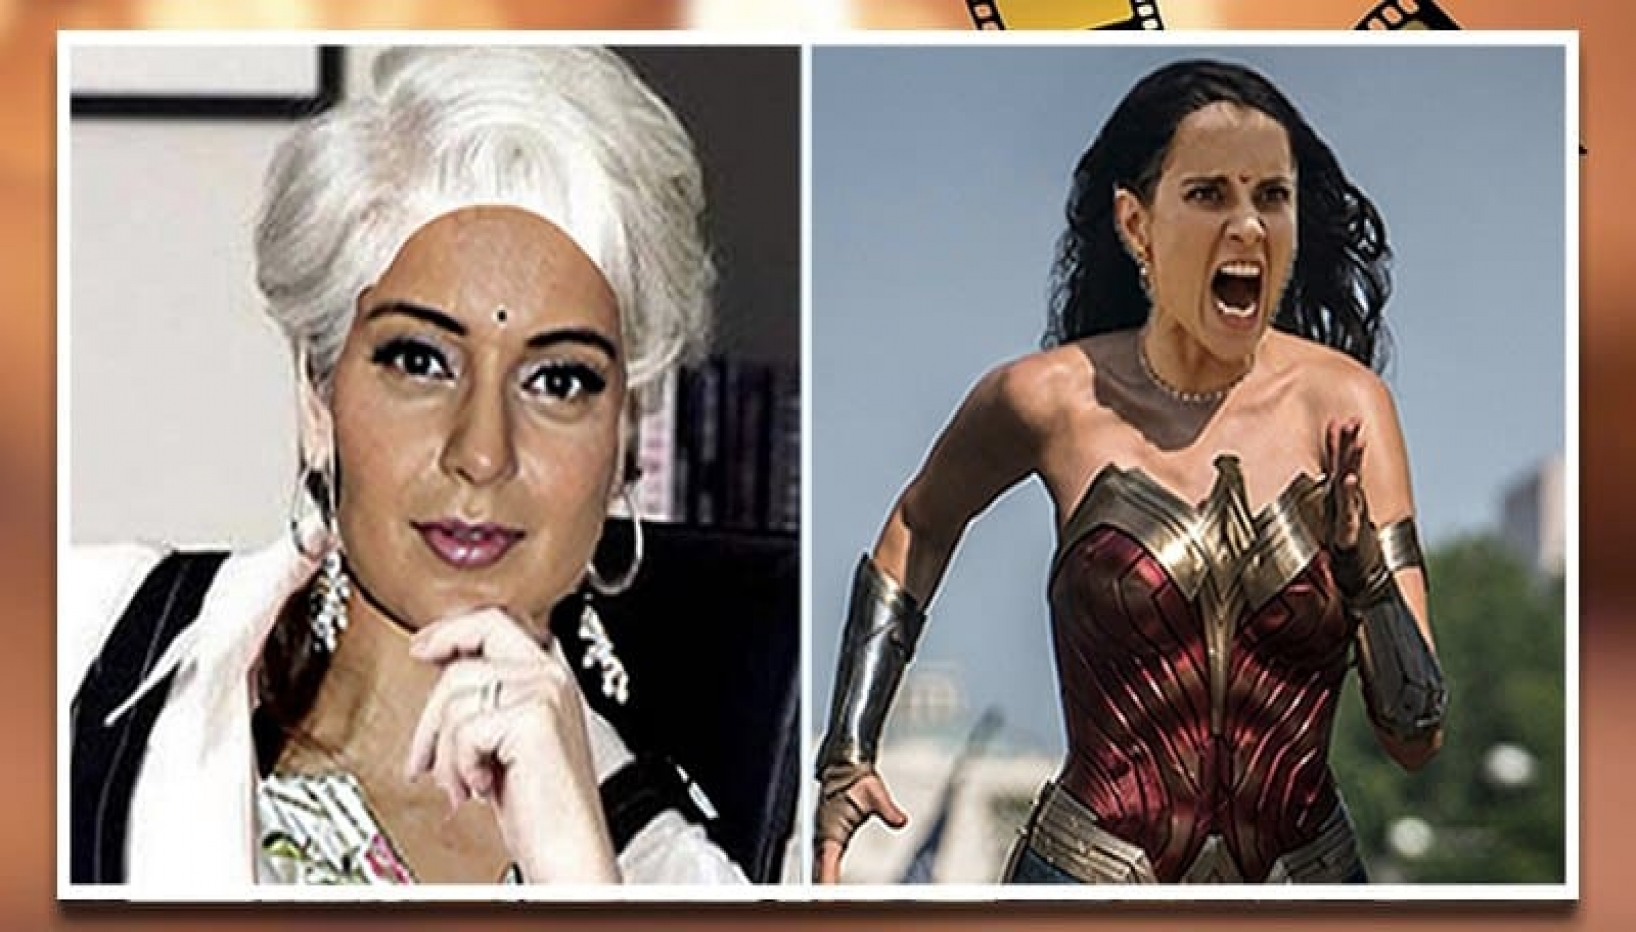 Kangana with white hair and as Wonder Woman side by side picture